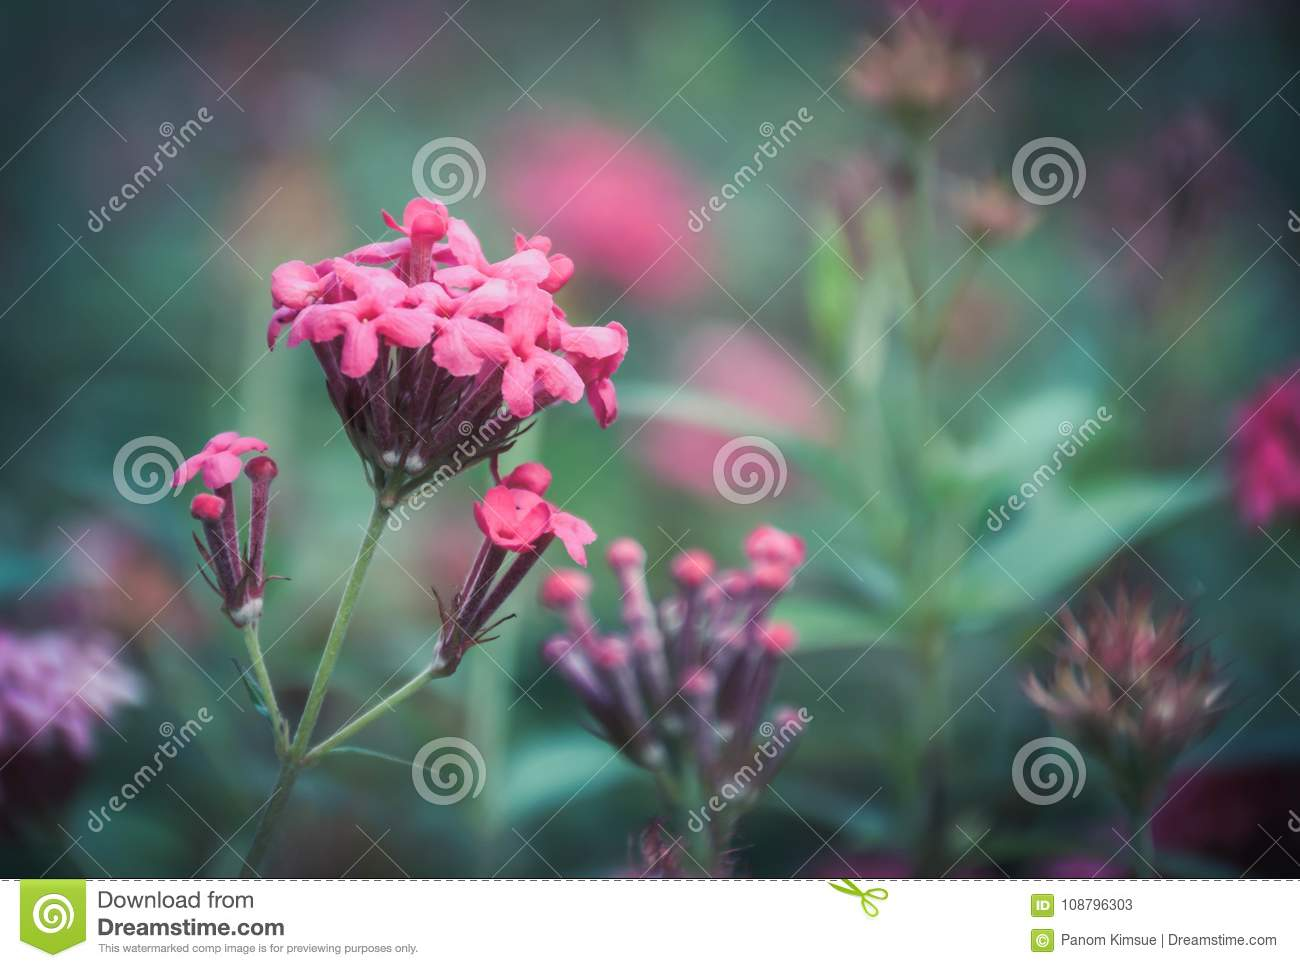 Pink Spike Flower In The Garden With Green Background Stock Image